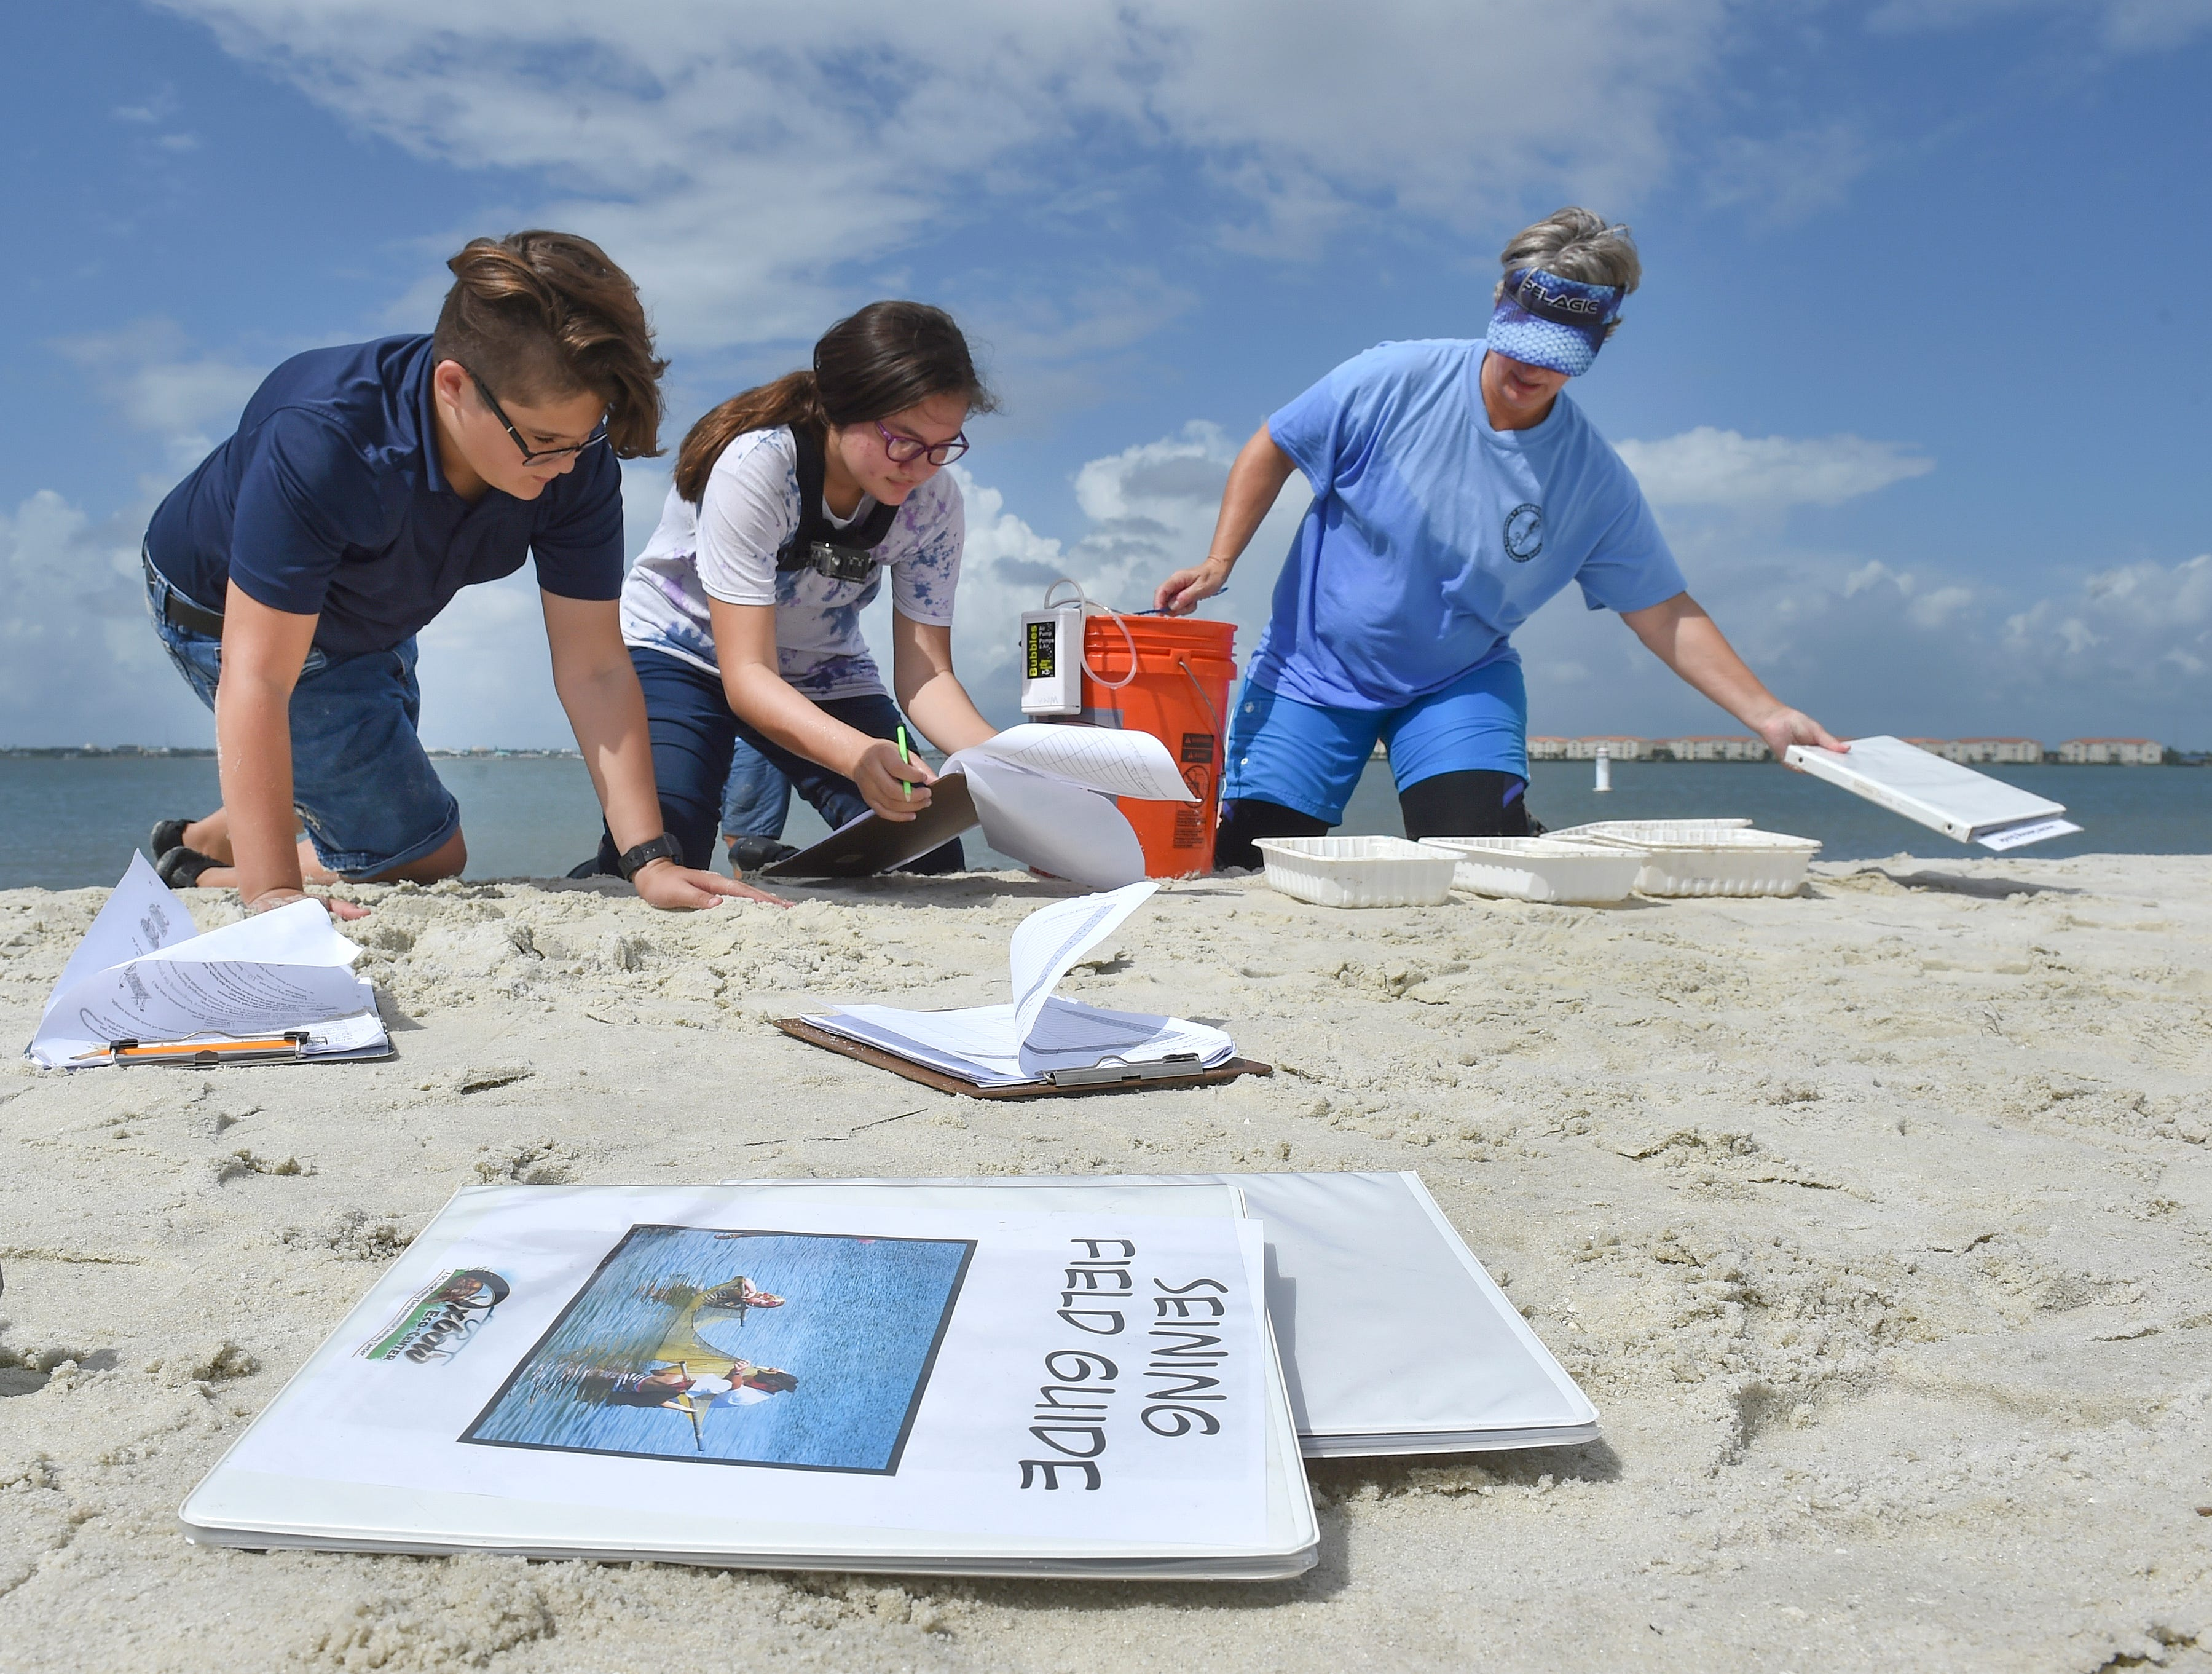 "St. Lucie West K-8 students (from left) Christian Ordenana, 12, and Abigail Rivero, 12, help Wren Underwood, senior education coordinator at the Oxbow Eco-Center, of Port St. Lucie, as they record their data from seining in the Indian River Lagoon, capturing mostly comb jellies, transparent marine invertebrates, at Jaycee Park Thursday, Oct. 4, 2018, in Fort Pierce. Sixteen seventh-grade students from St. Lucie West K-8 school, along with their environmental partner, Oxbow Eco-Center, were participating in the ""A Day in the Life of the Indian River Lagoon"", a community-based citizen science and experimental research program to have students, teachers, and environmental experts collaborate in collecting water samples and biological inventories along the Indian River Lagoon. Students and teachers paired with natural resource organizations from Volusia County south through Palm Beach County, testing the health of the entire length of the lagoon. ""Environmental education is such an important component of education and I think every citizen, every person in our community needs to understand how natural systems work and what we can do to help them,"" Underwood said."